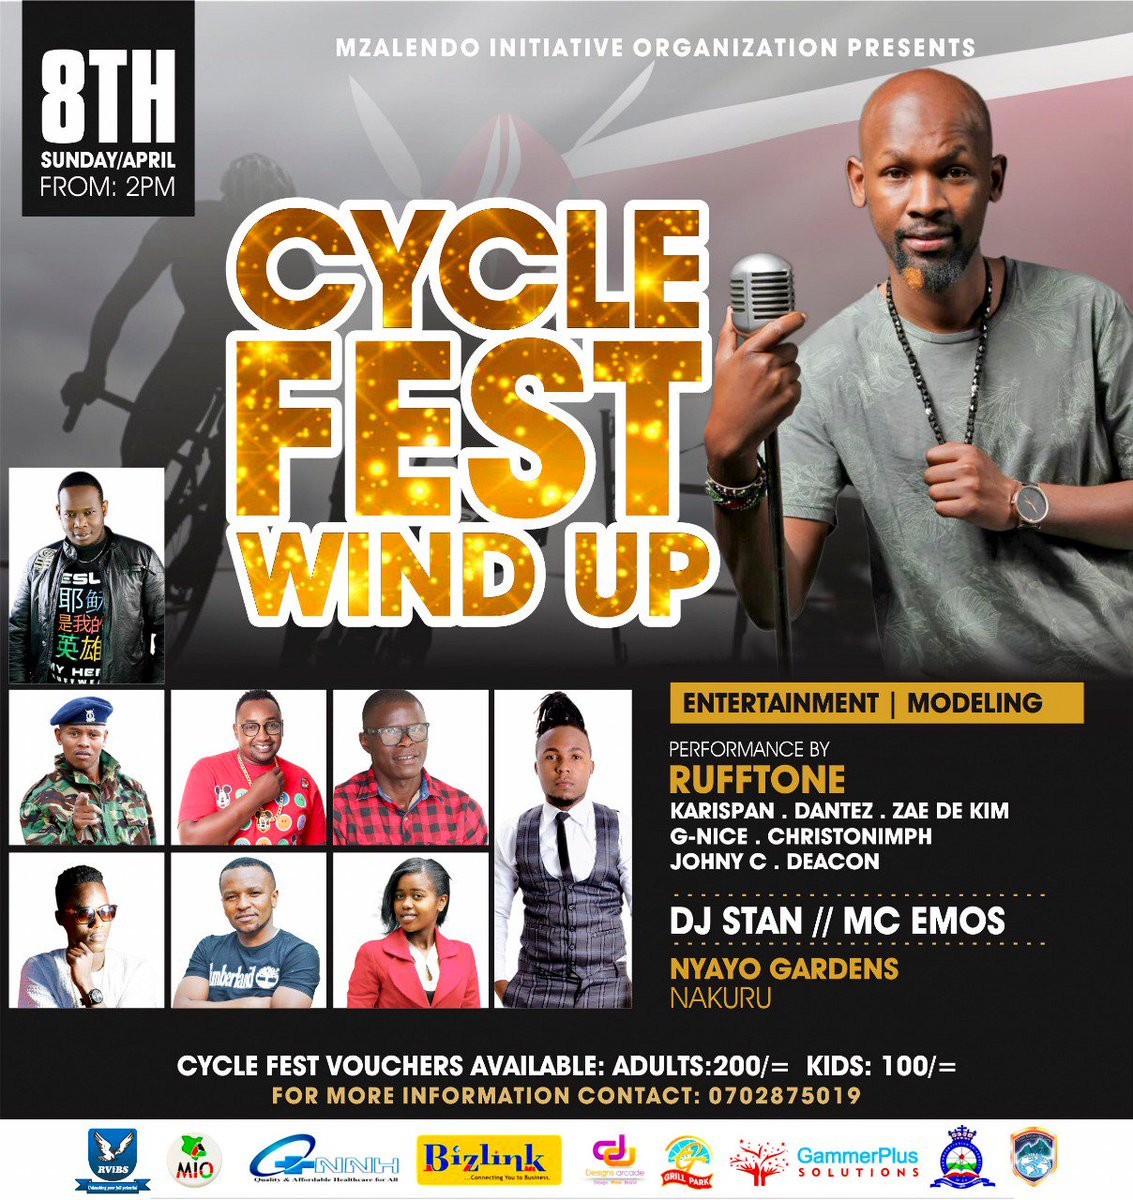 570367850d2  cyclefestwindup hashtag on Twitter